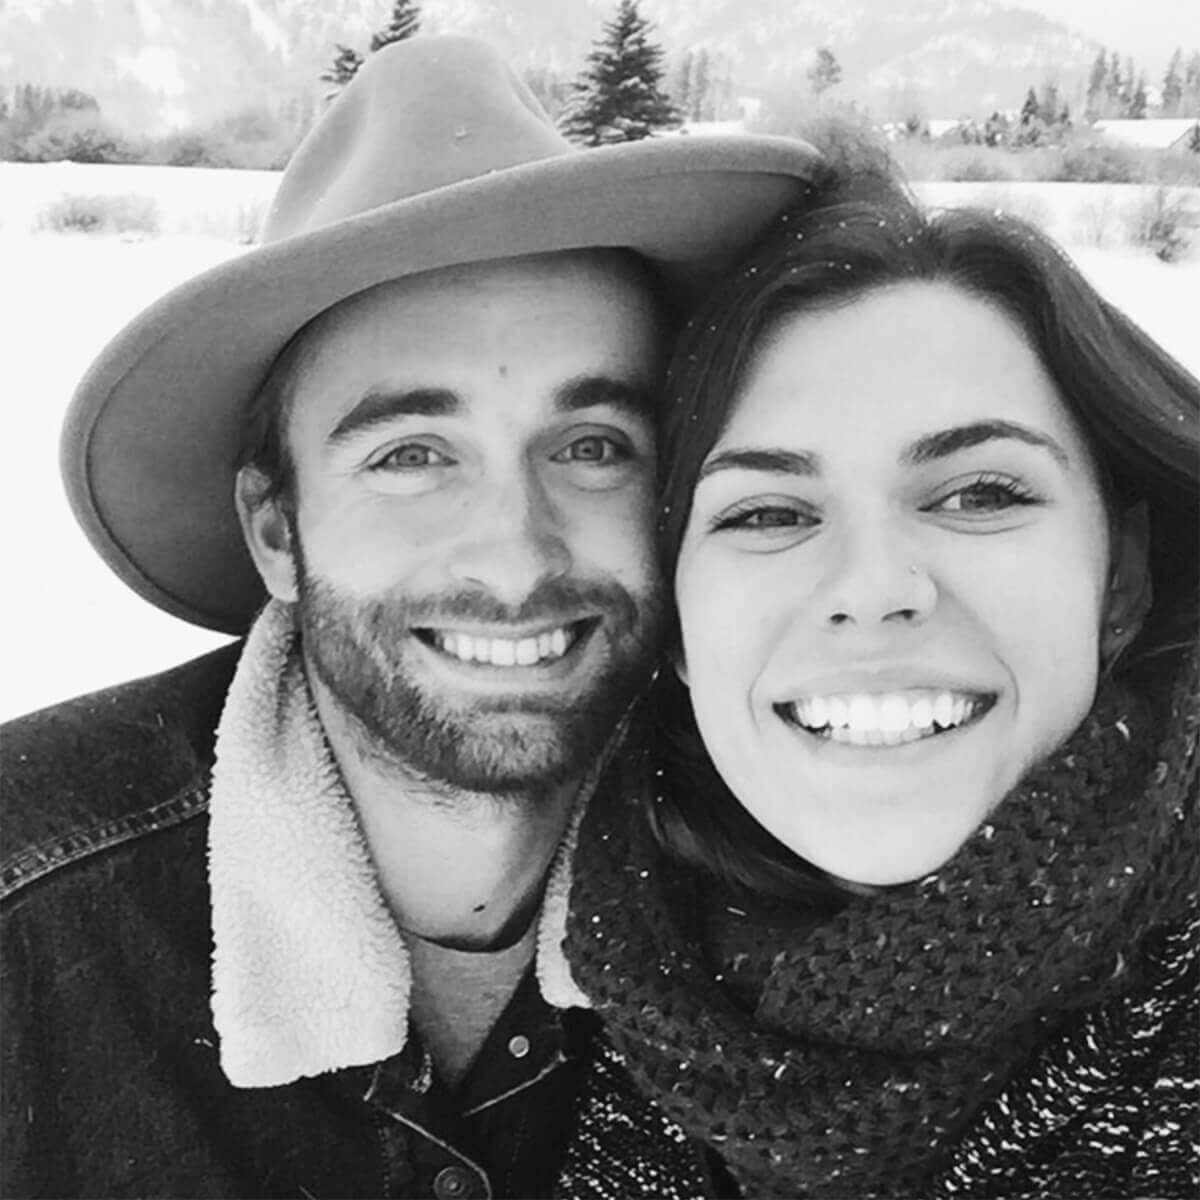 Couple posing for selfie on a snowy day